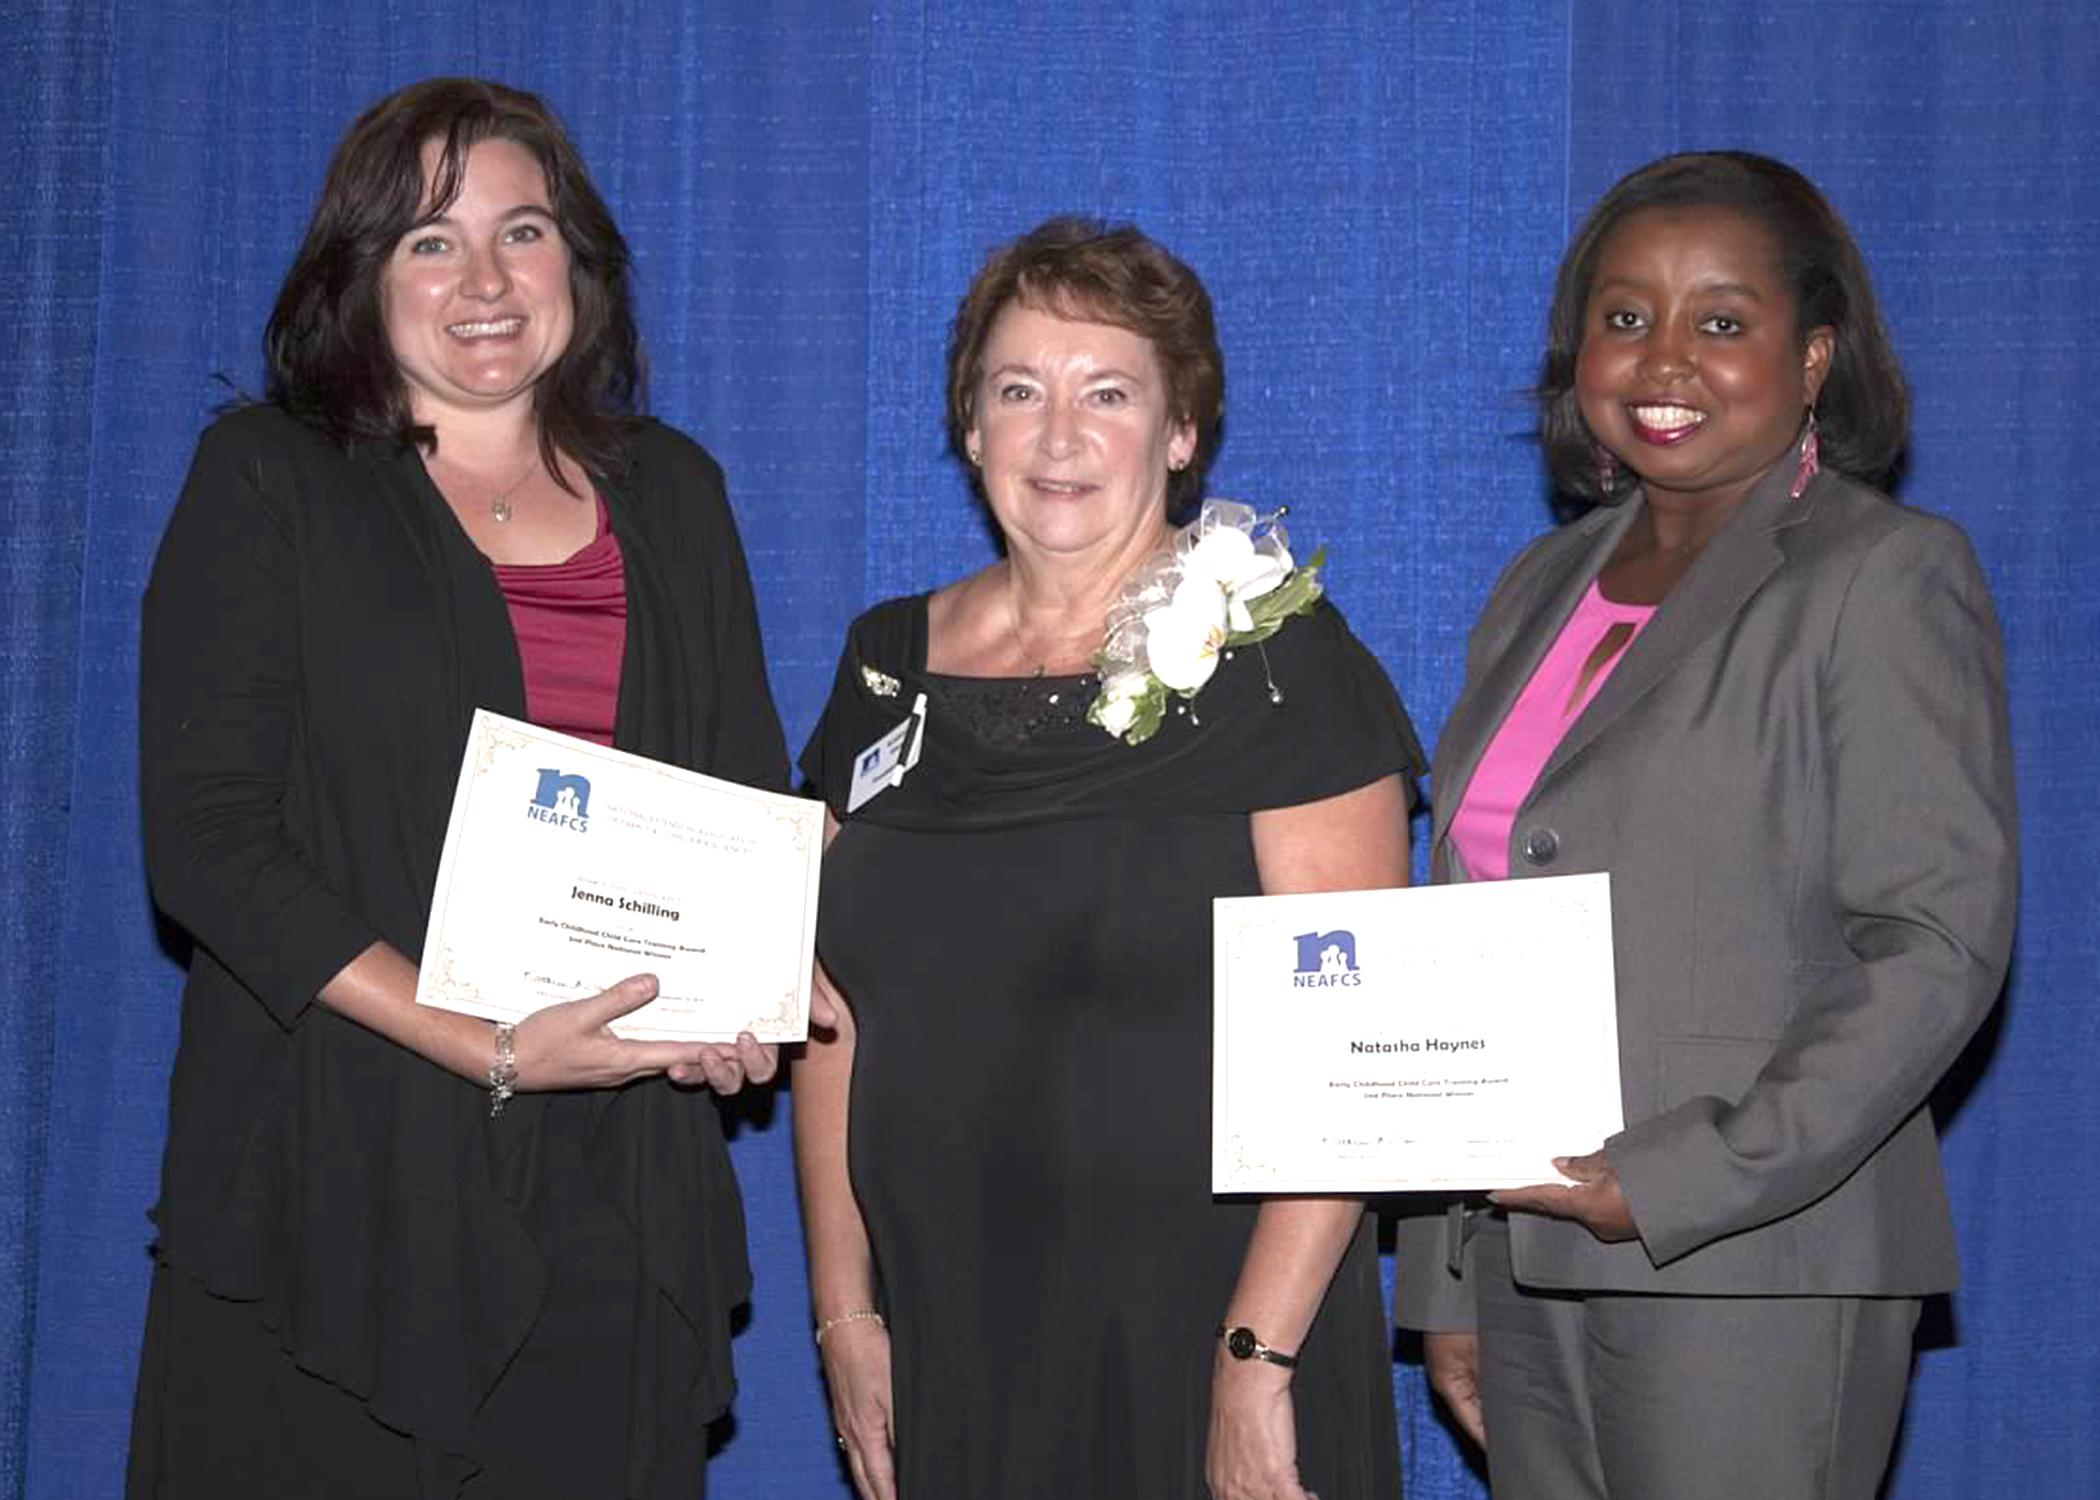 National Extension Association for Family and Consumer Sciences past president Kathleen Ann Olson, center, presents Jenna Schilling, left, and Natasha Haynes with the Early Childhood Child Care Training Award for the TummySafe program at the NEAFCS Annual Conference in Lexington, Kentucky on Sept. 18, 2014. (Submitted Photo)